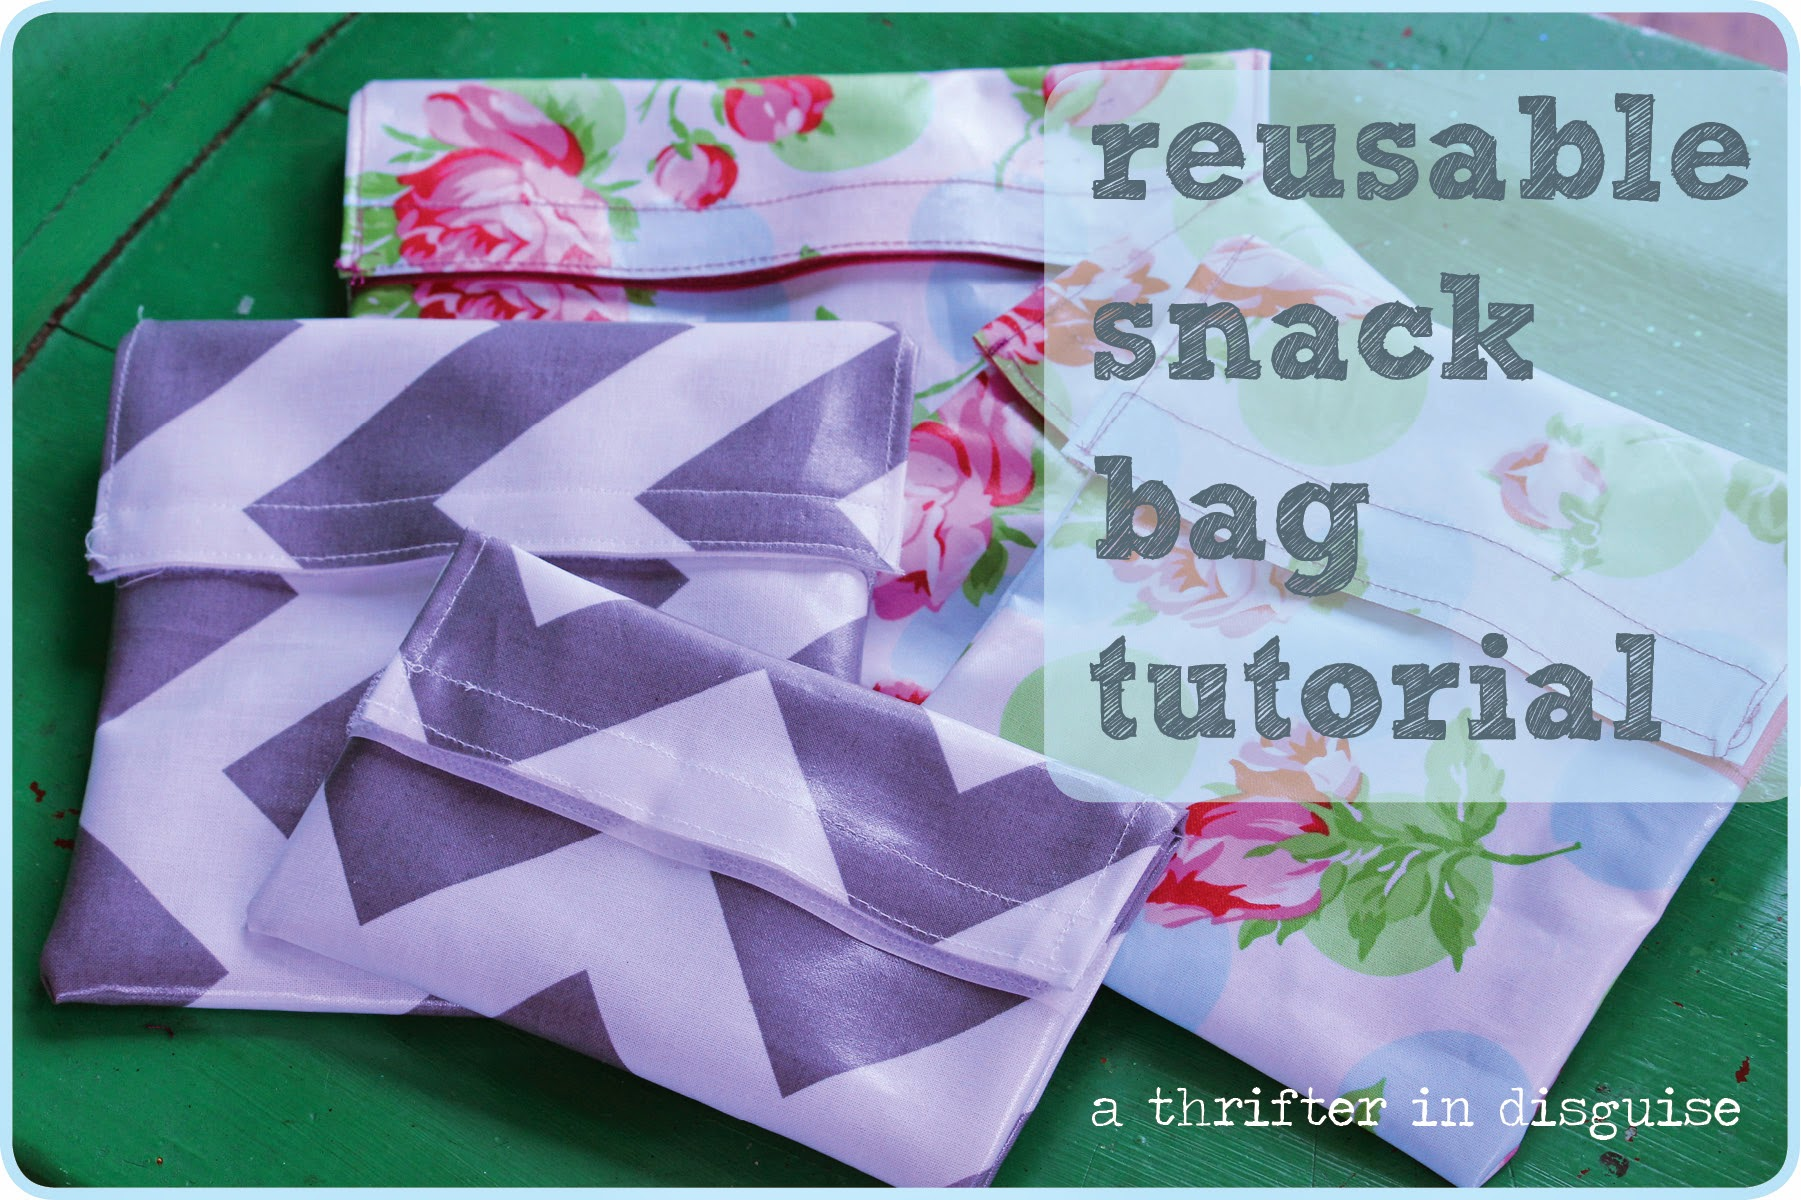 Dishwasher-safe reusable snack bags via thrifterindisguise.com